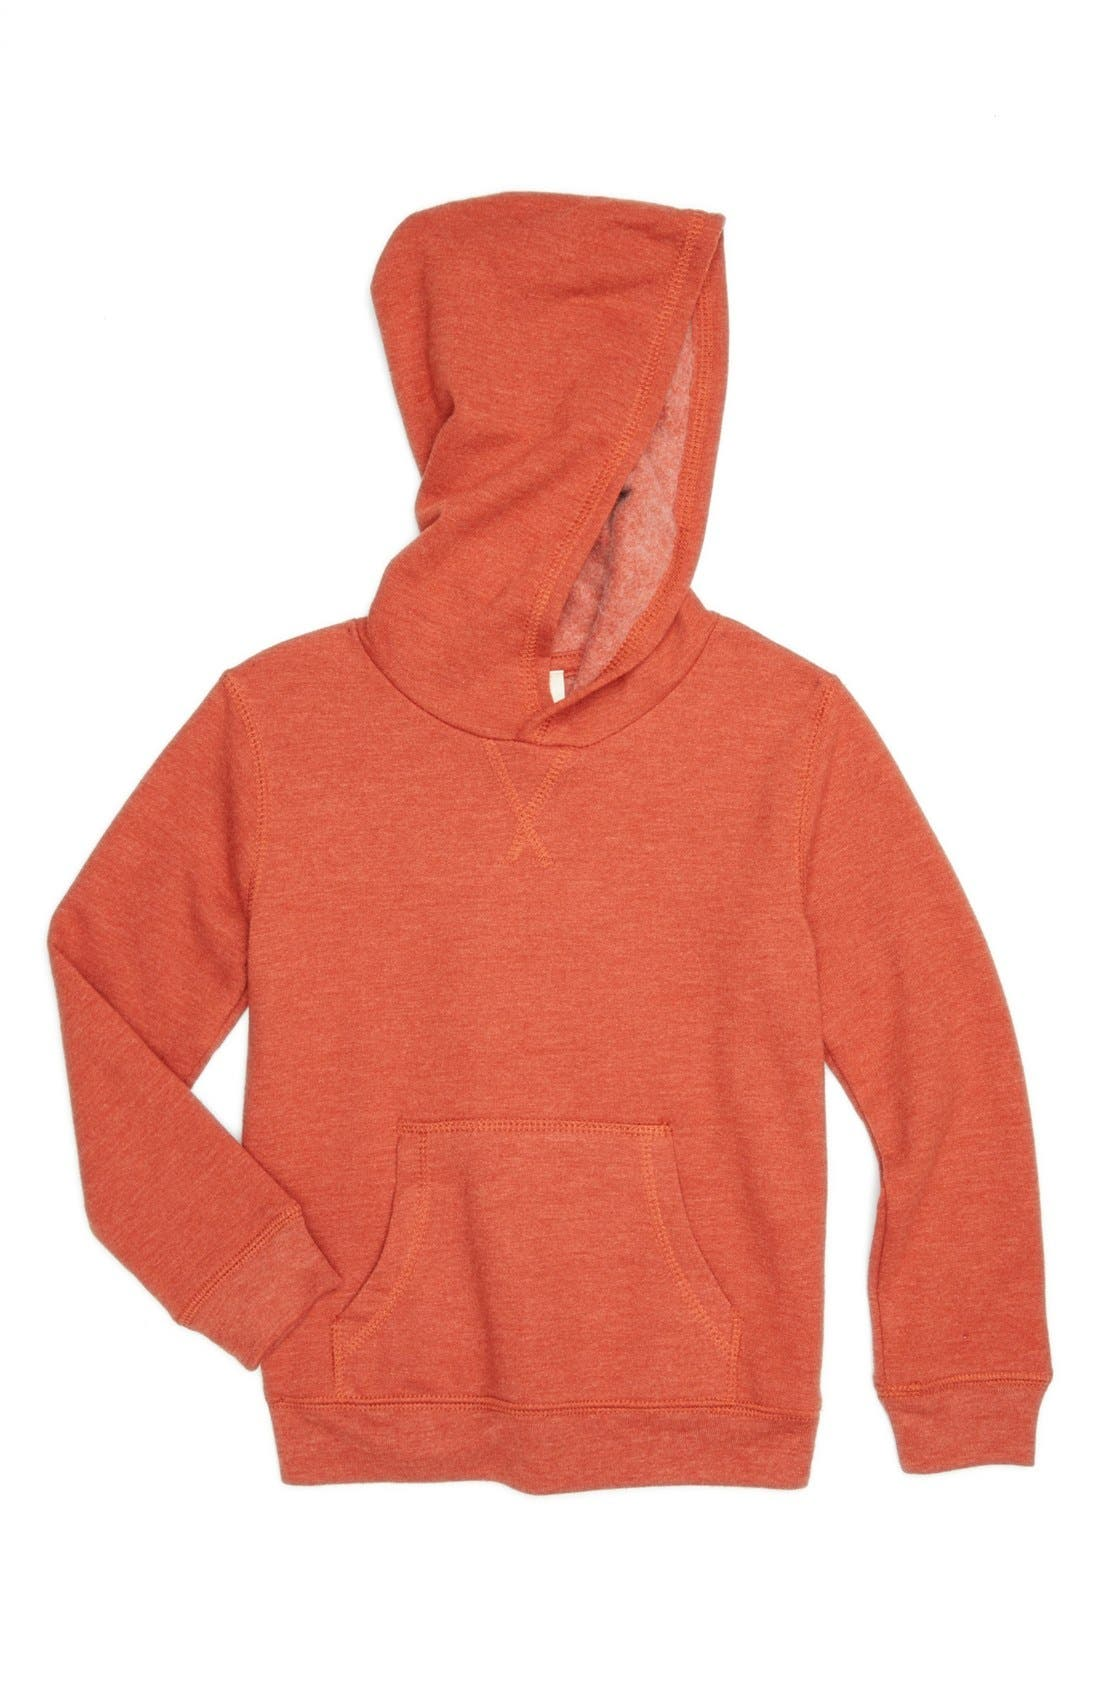 Alternate Image 1 Selected - Tucker + Tate 'Oak Bay' Hoodie (Baby Boys)